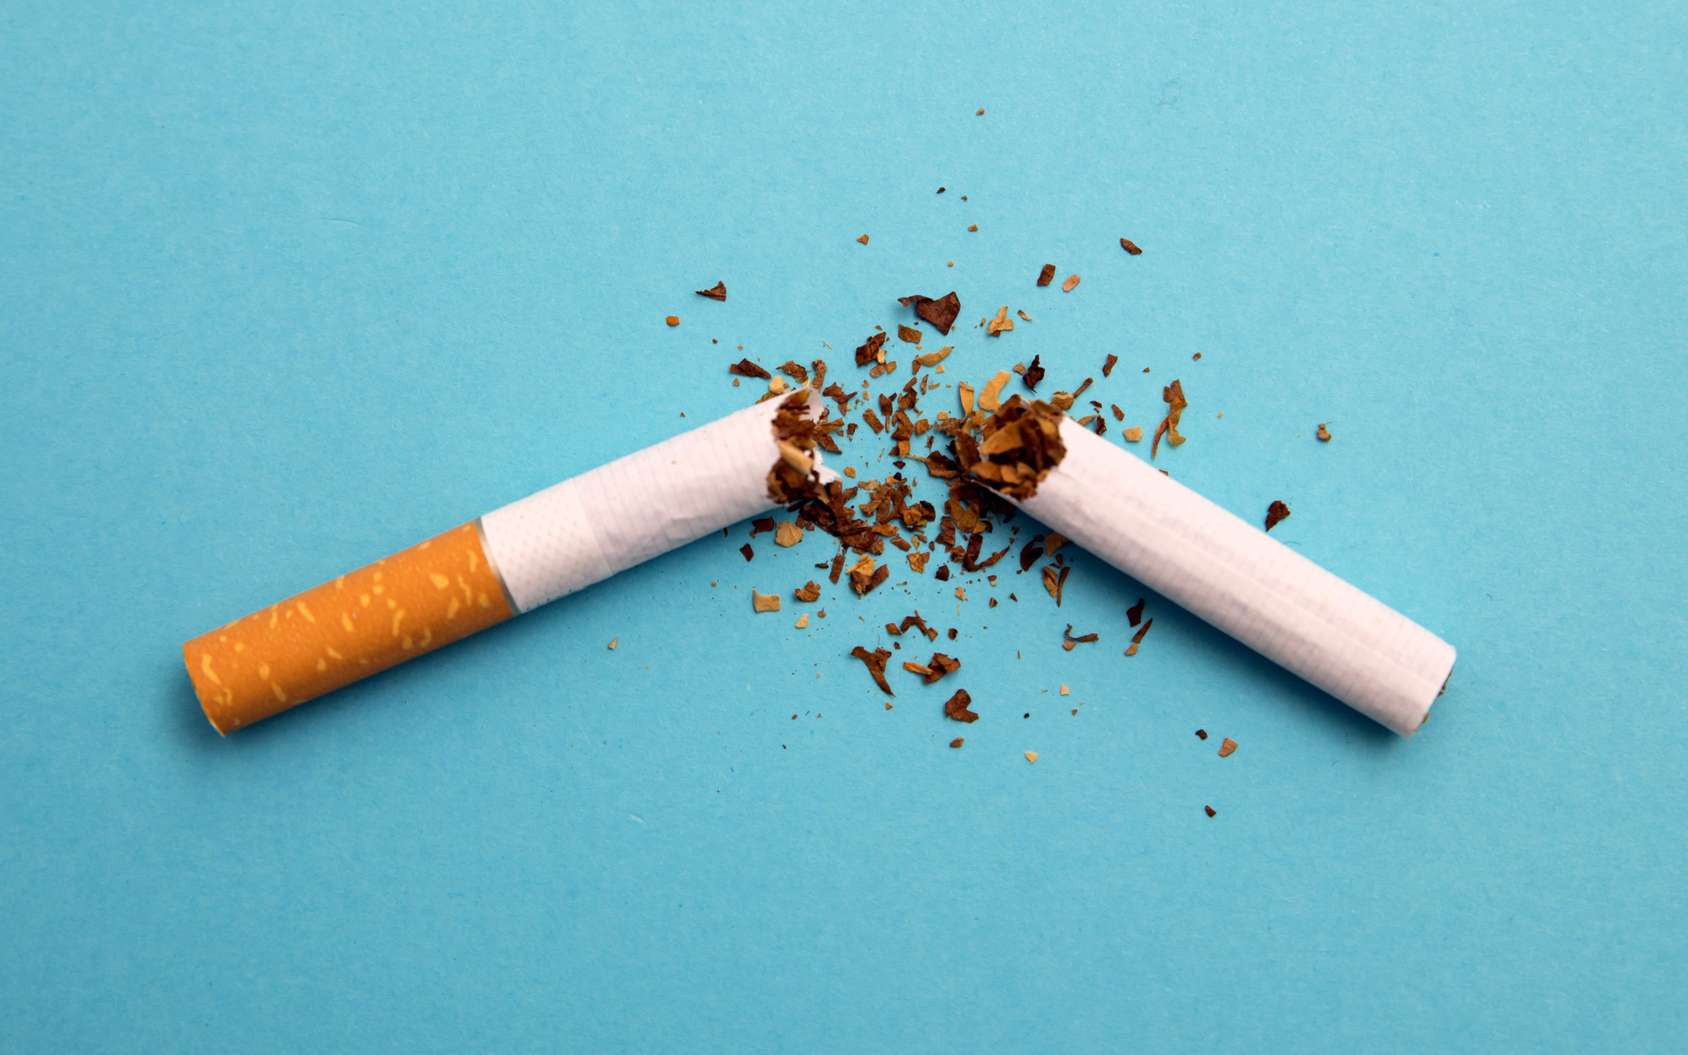 Le tabac multiplie par 10 ou 15 le risque de cancer du poumon. © ivanchik29, Fotolia